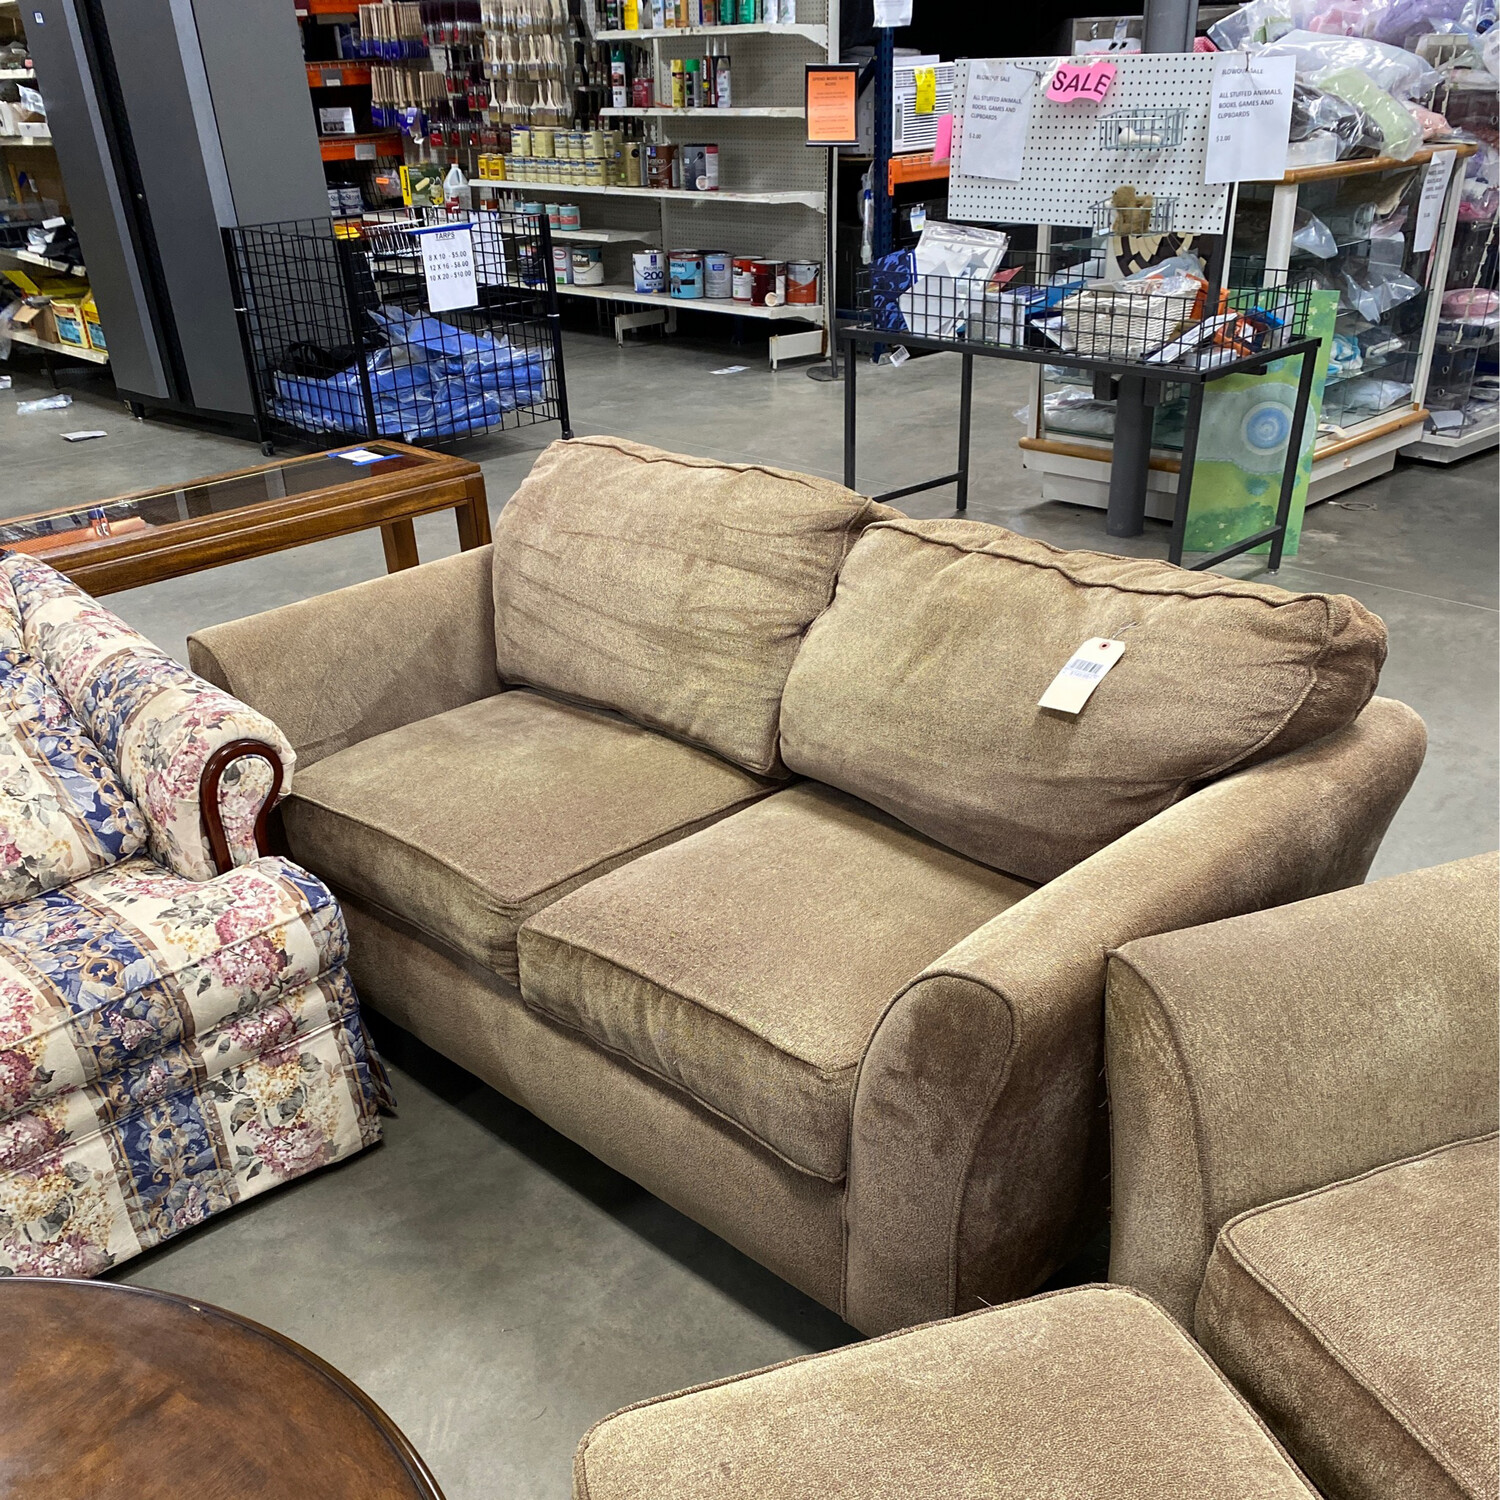 CLEARANCE-GREEN/GOLD LOVESEAT/CHAIR WITH OTTOMAN